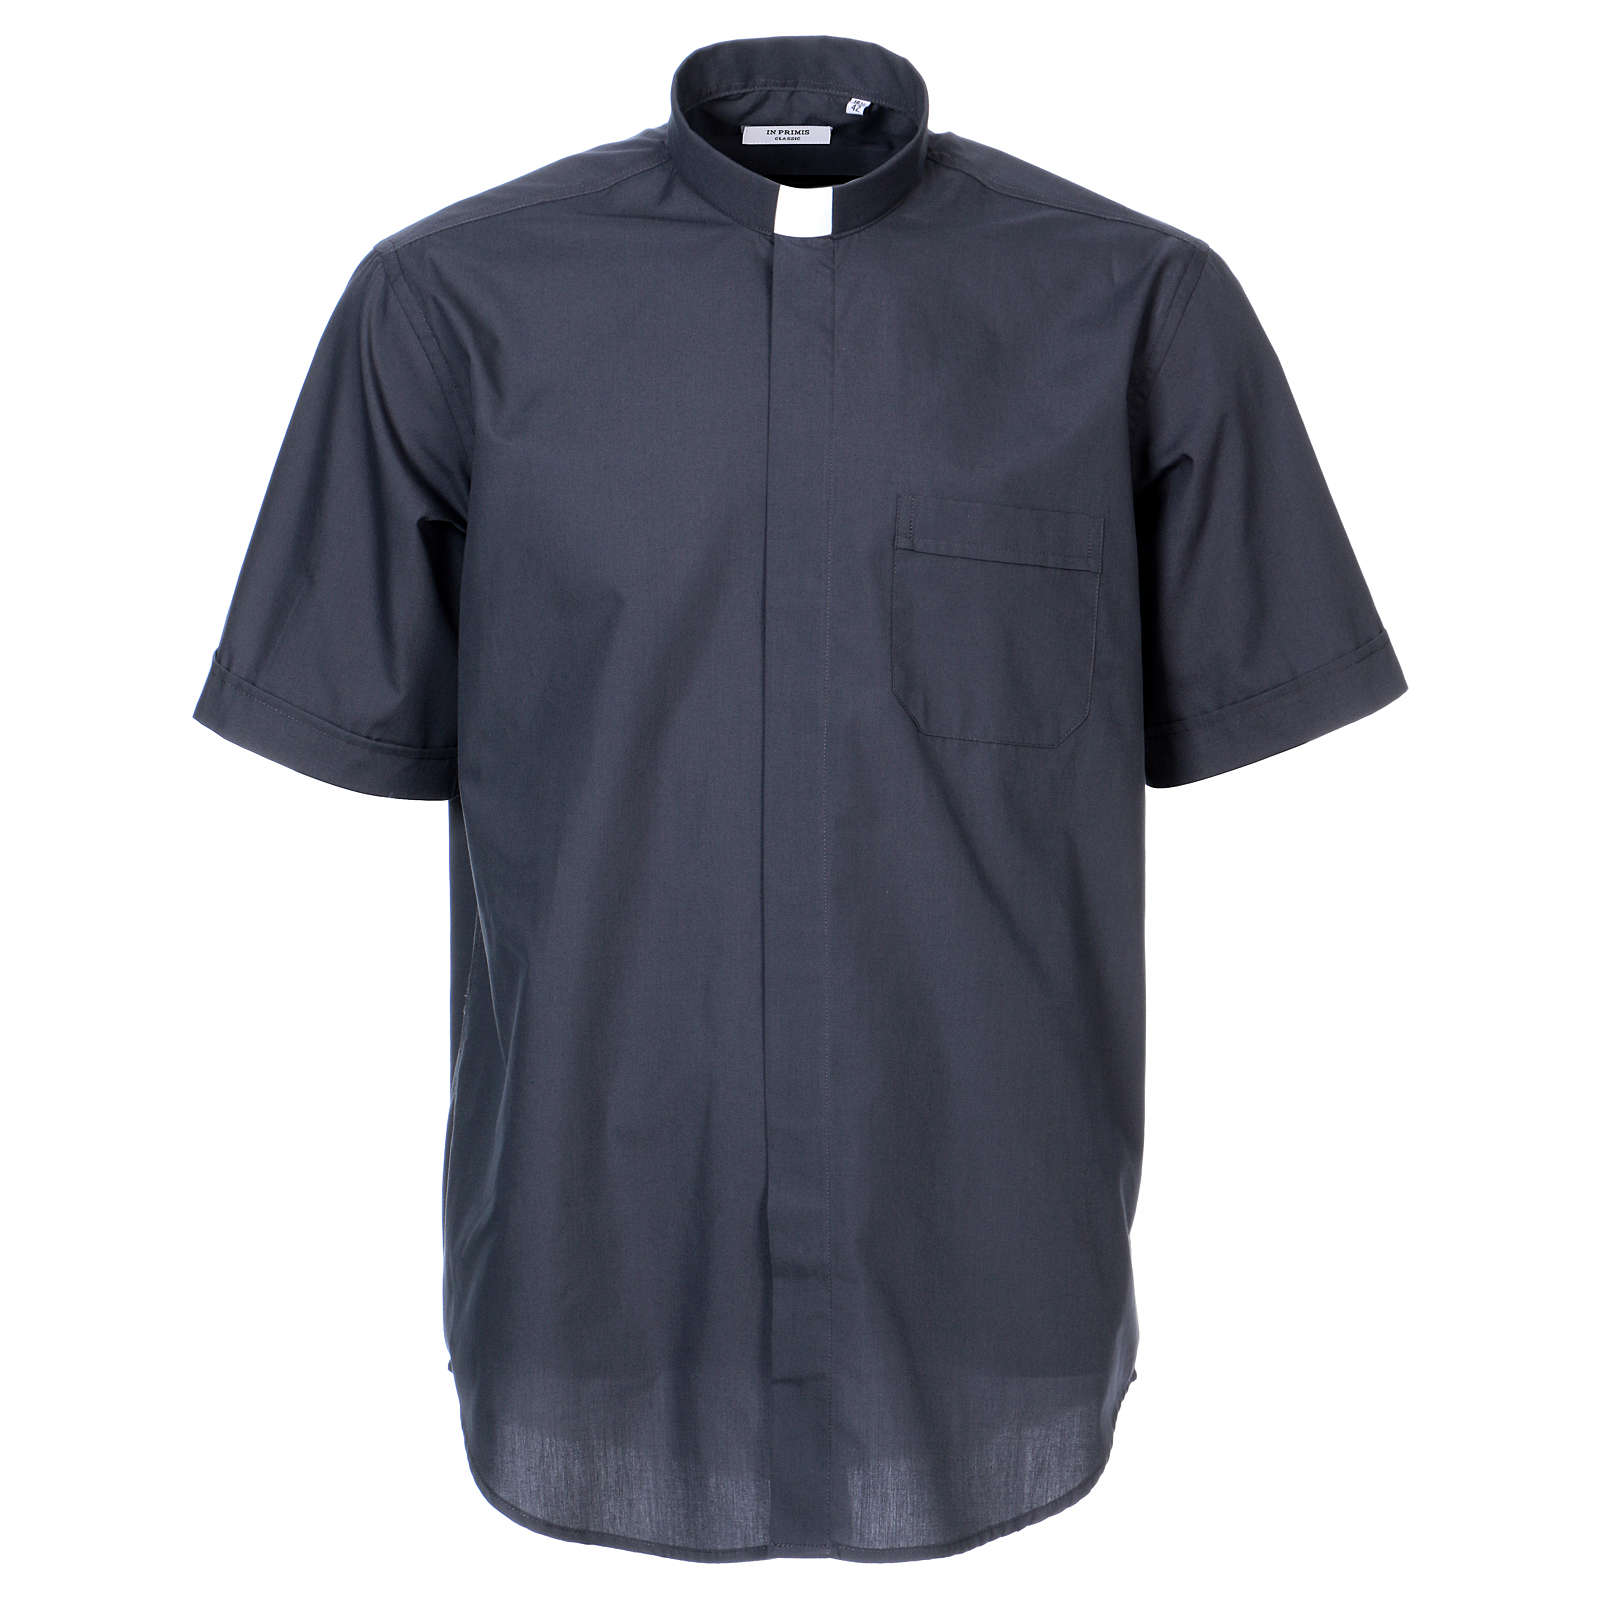 Clergy shirt, short sleeves in mixed cotton, dark grey 4